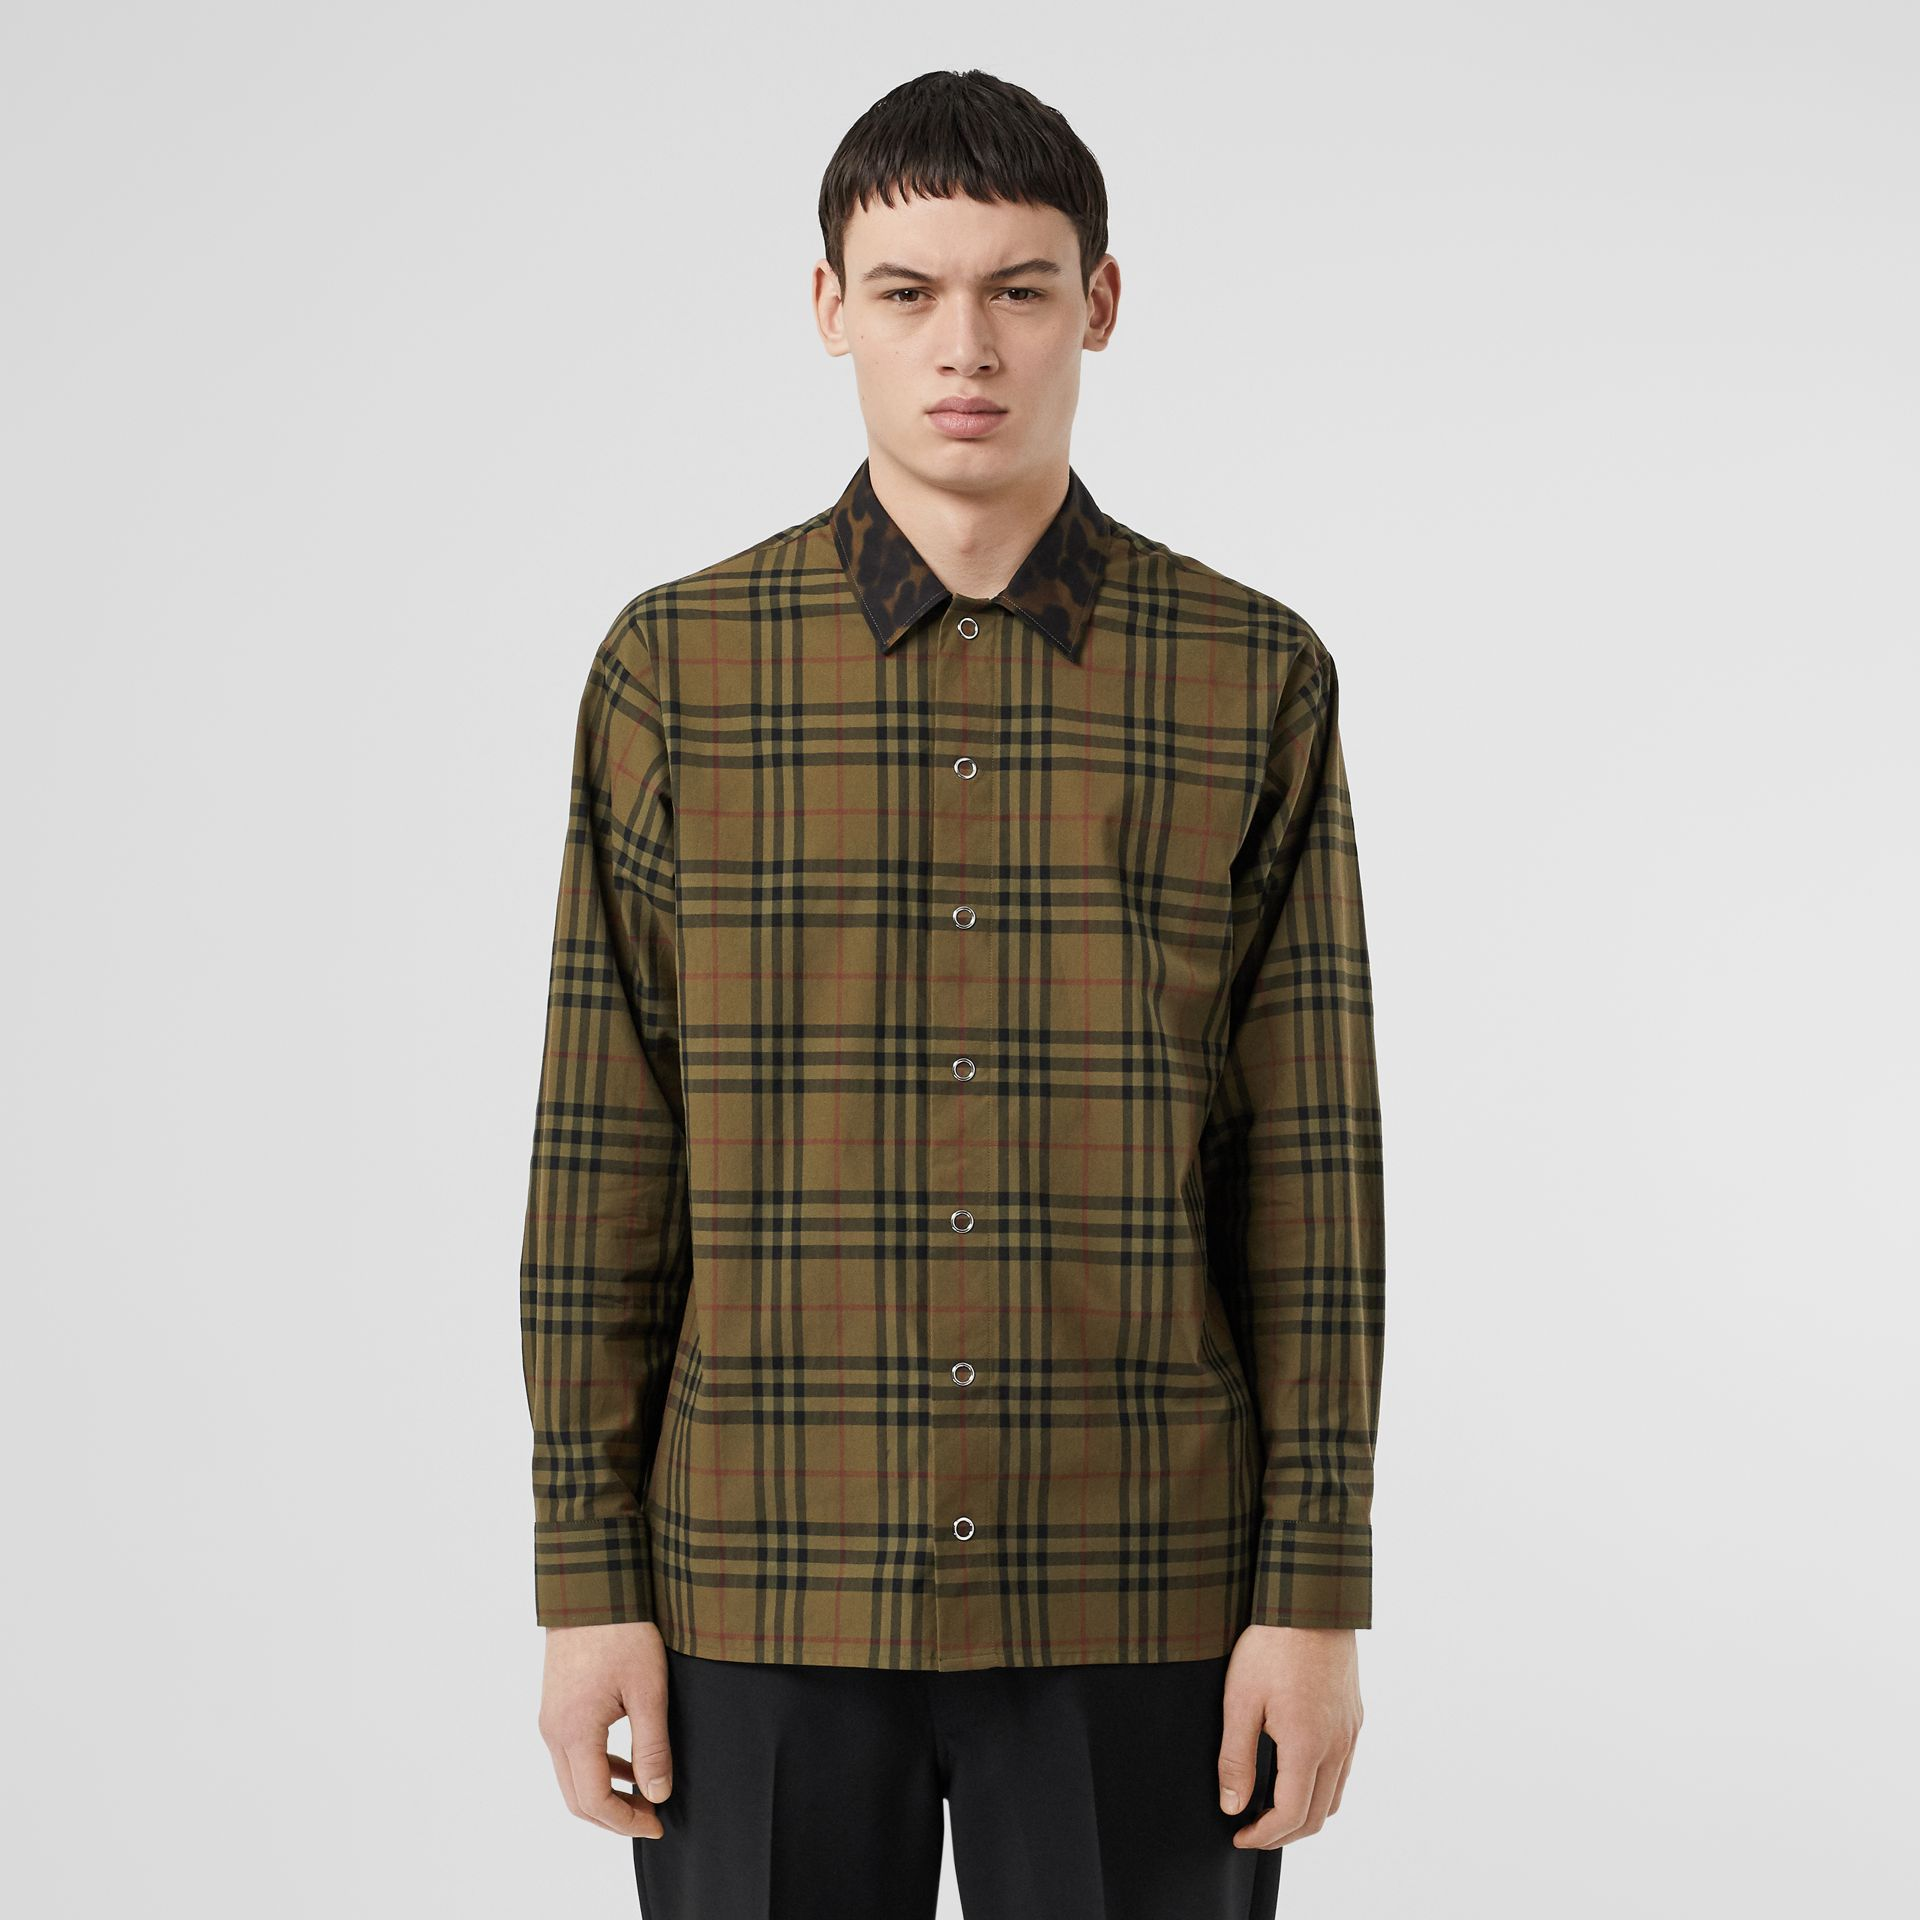 Contrast Collar Vintage Check Cotton Shirt in Army Green | Burberry United States - gallery image 0